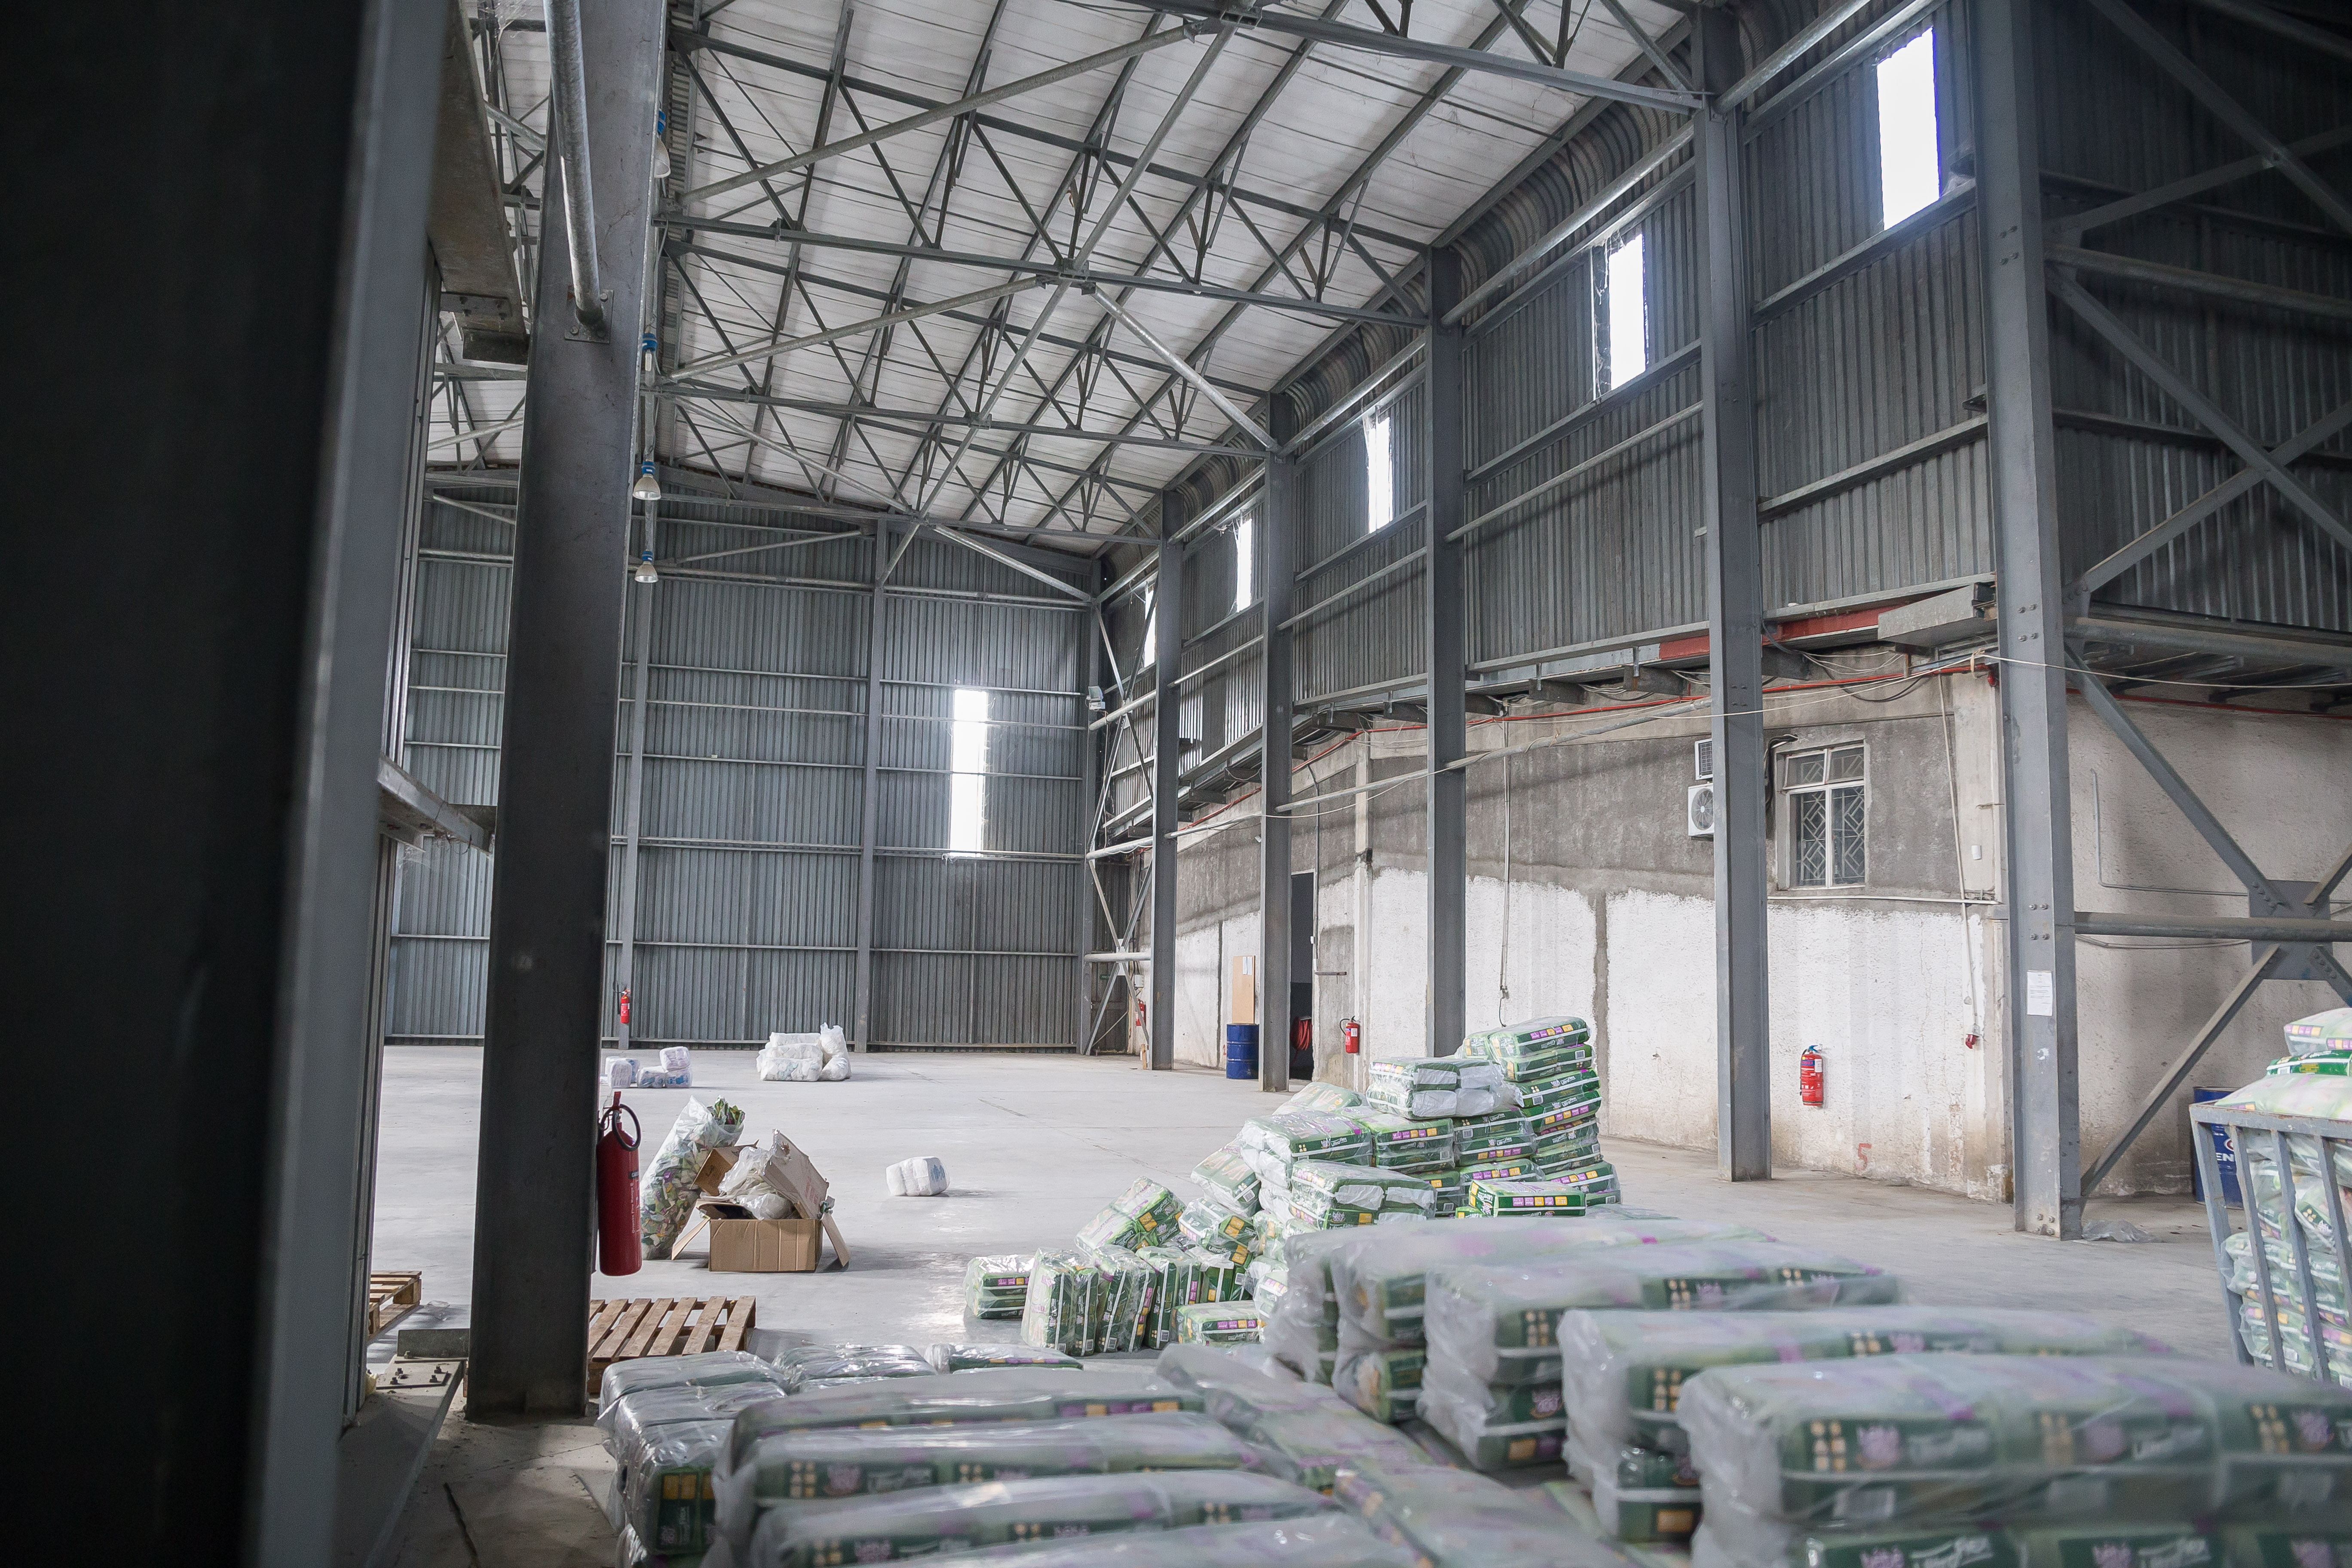 Storage / Warehouse Space 500m² at Trianon